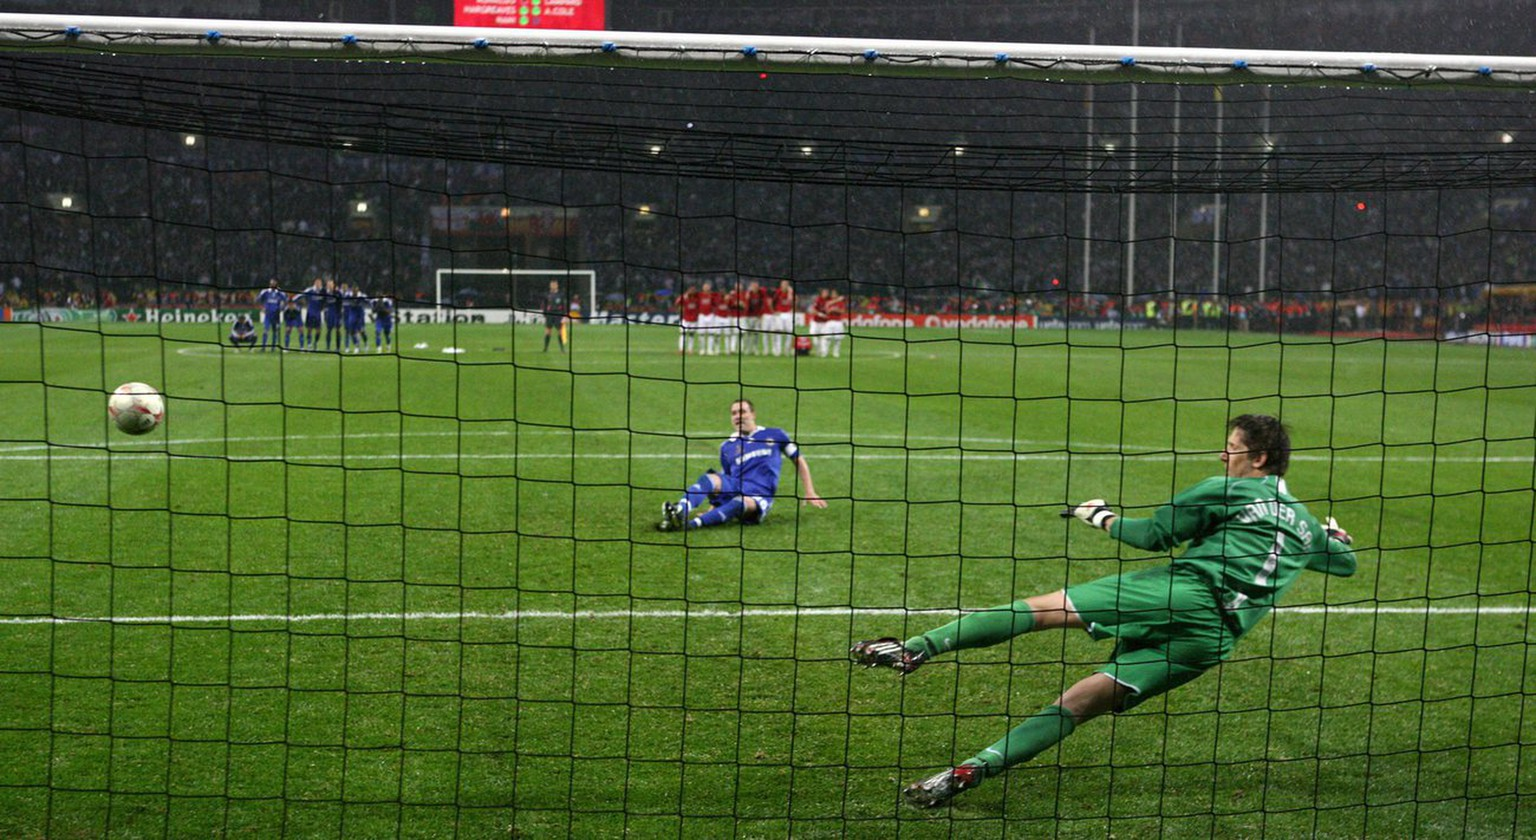 epa01353248 John Terry of Chelsea misses his penalty against Manchester United goalkeeper Edwin van der Sar during the UEFA Champions League final between Manchester United and FC Chelsea at the Luzhniki stadium in Moscow, Russia, 21 May 2008.  EPA/SERGEI ILNITSKY NO MOBILE PHONE DEVICES